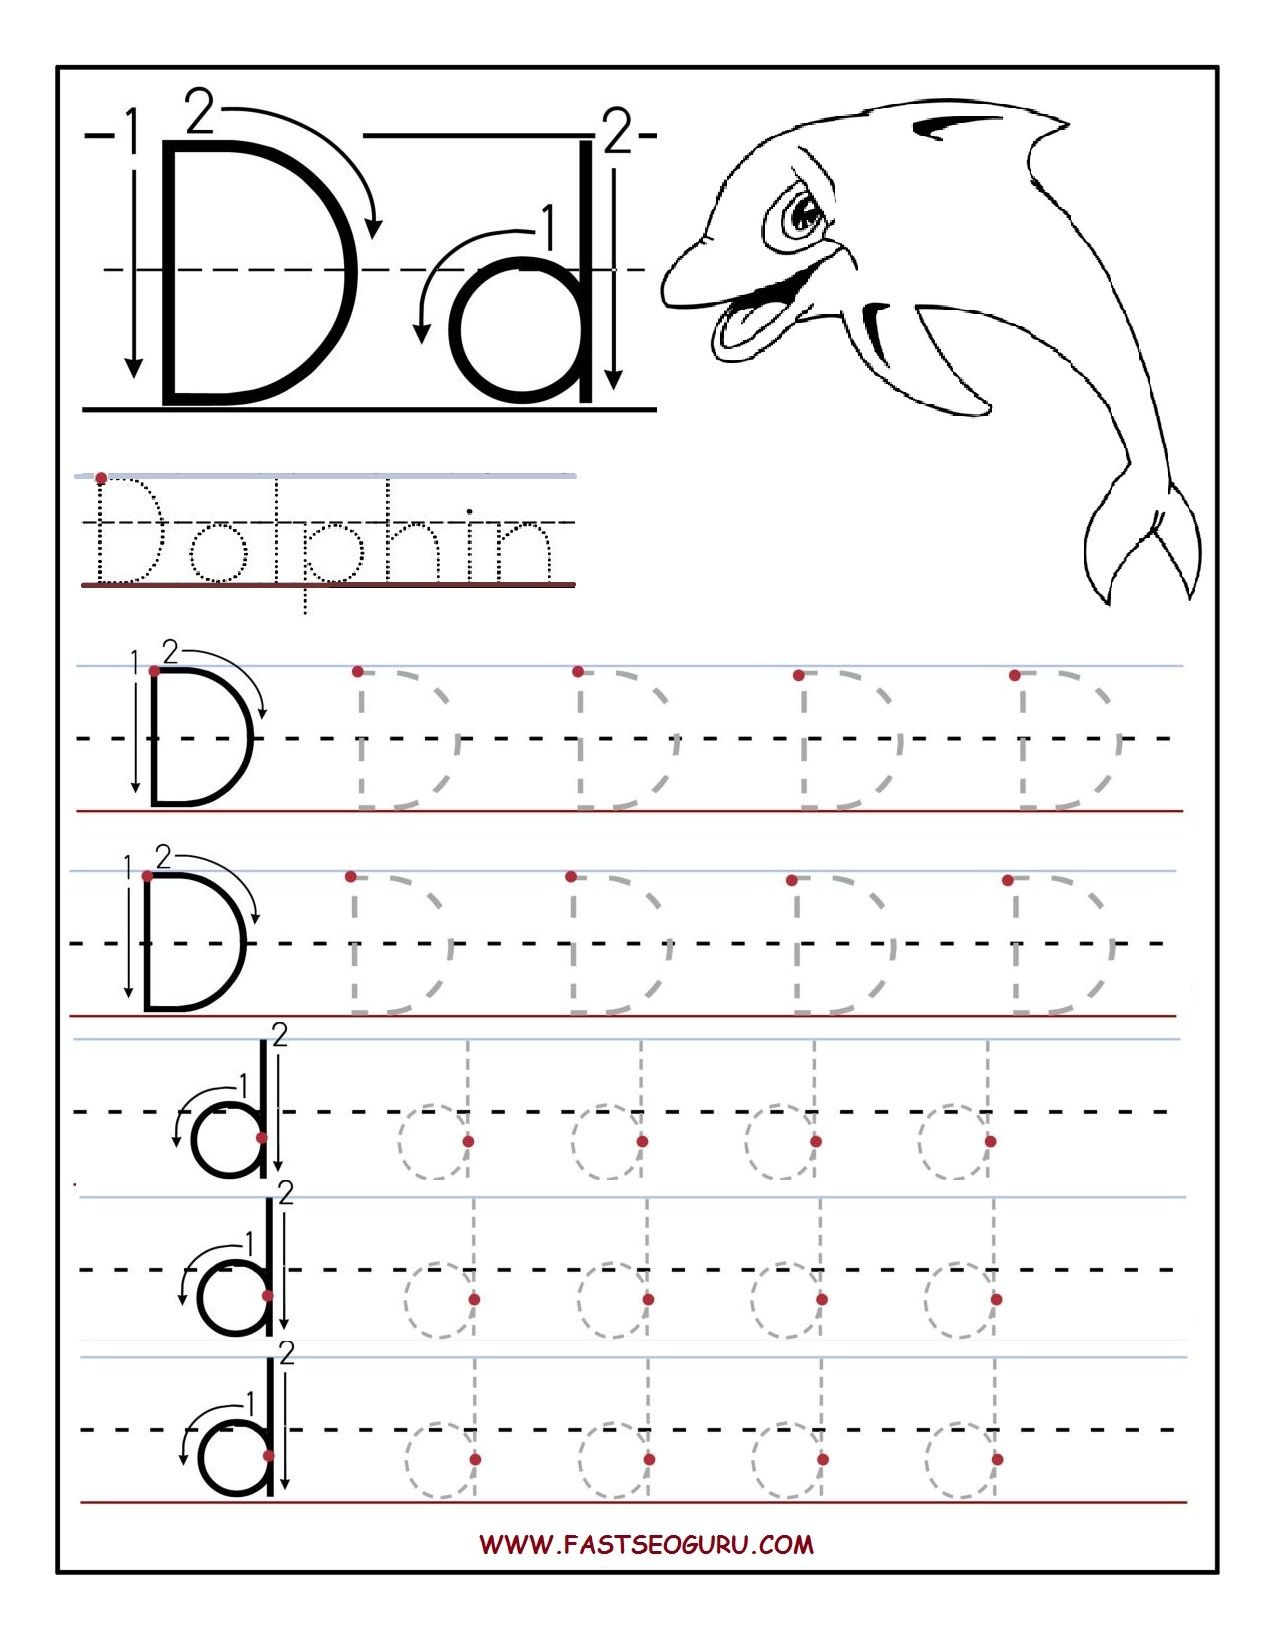 worksheet Letter I Worksheets For Preschool the letter dd worksheets for kindergarten download or right click image to save